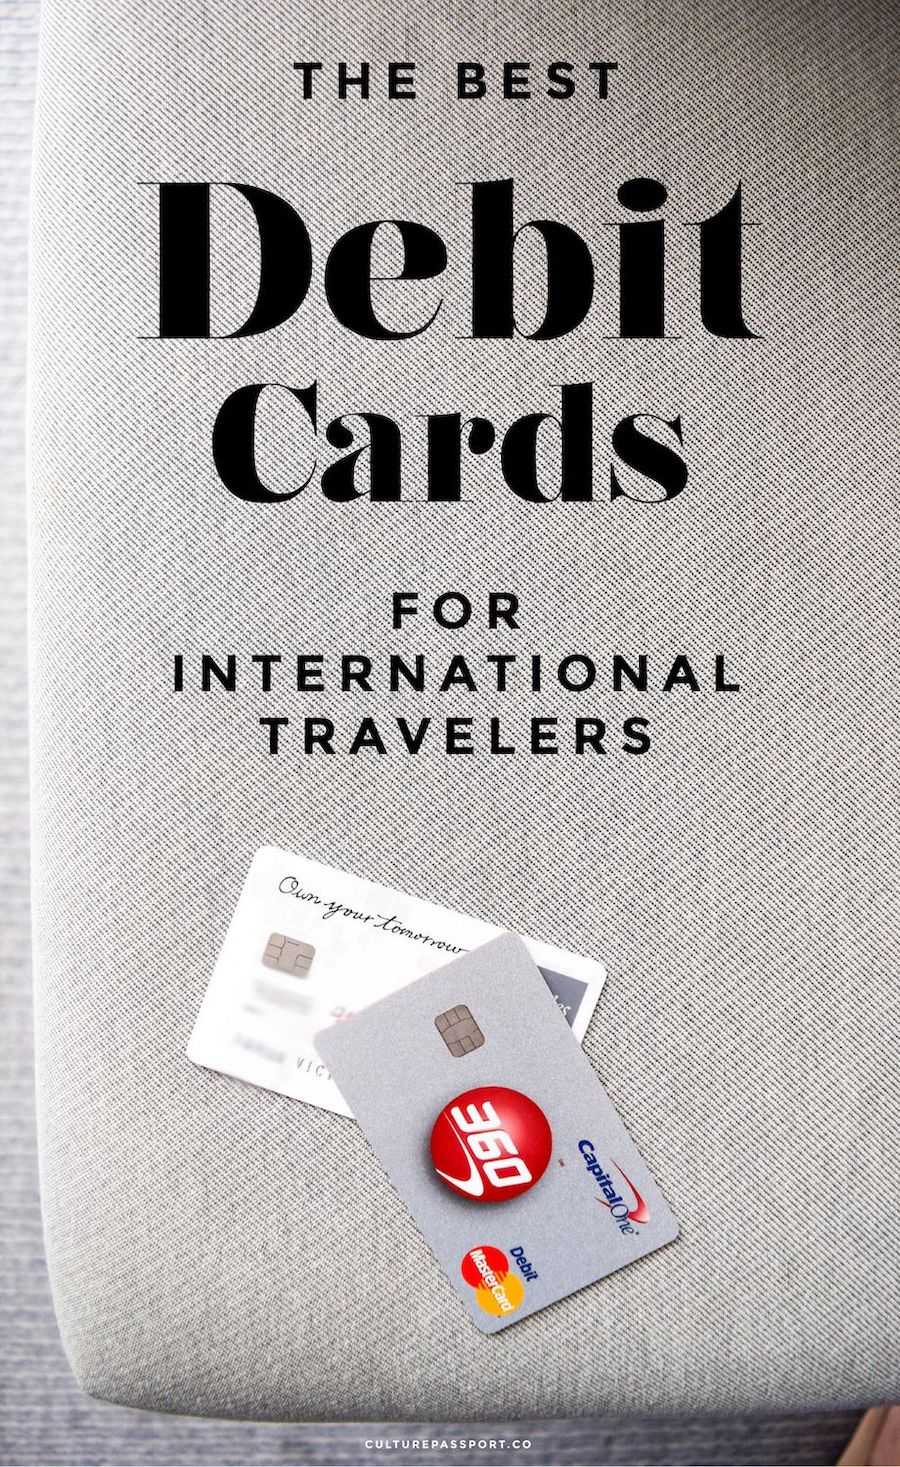 Best Debit Cards for International American Travelers - Save Money on Fees!